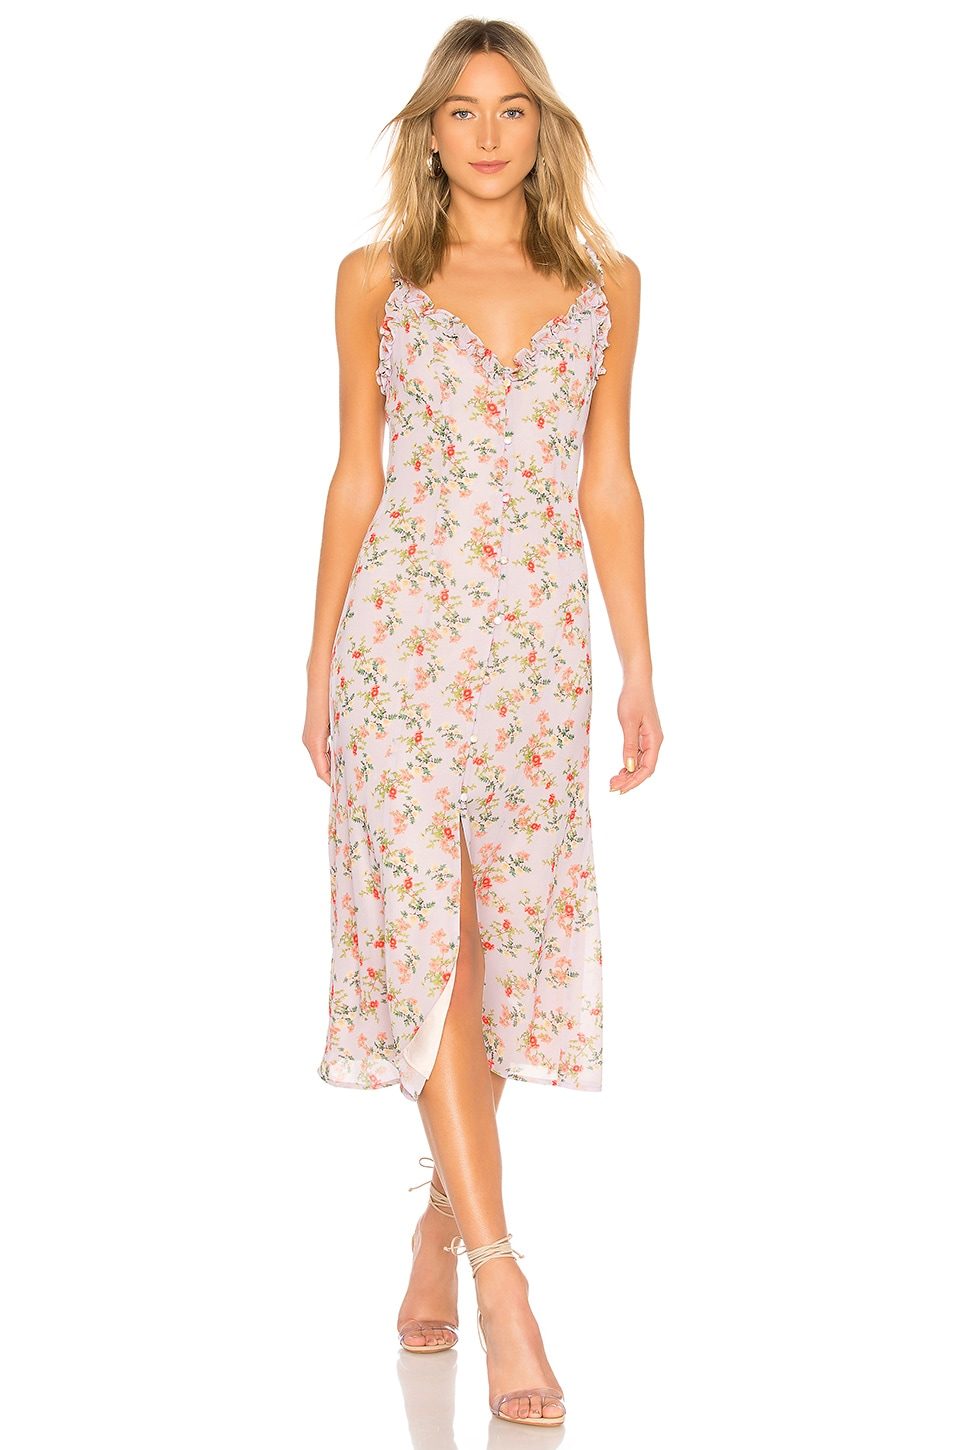 Lovers + Friends Sun Room Midi in Lilac Floral